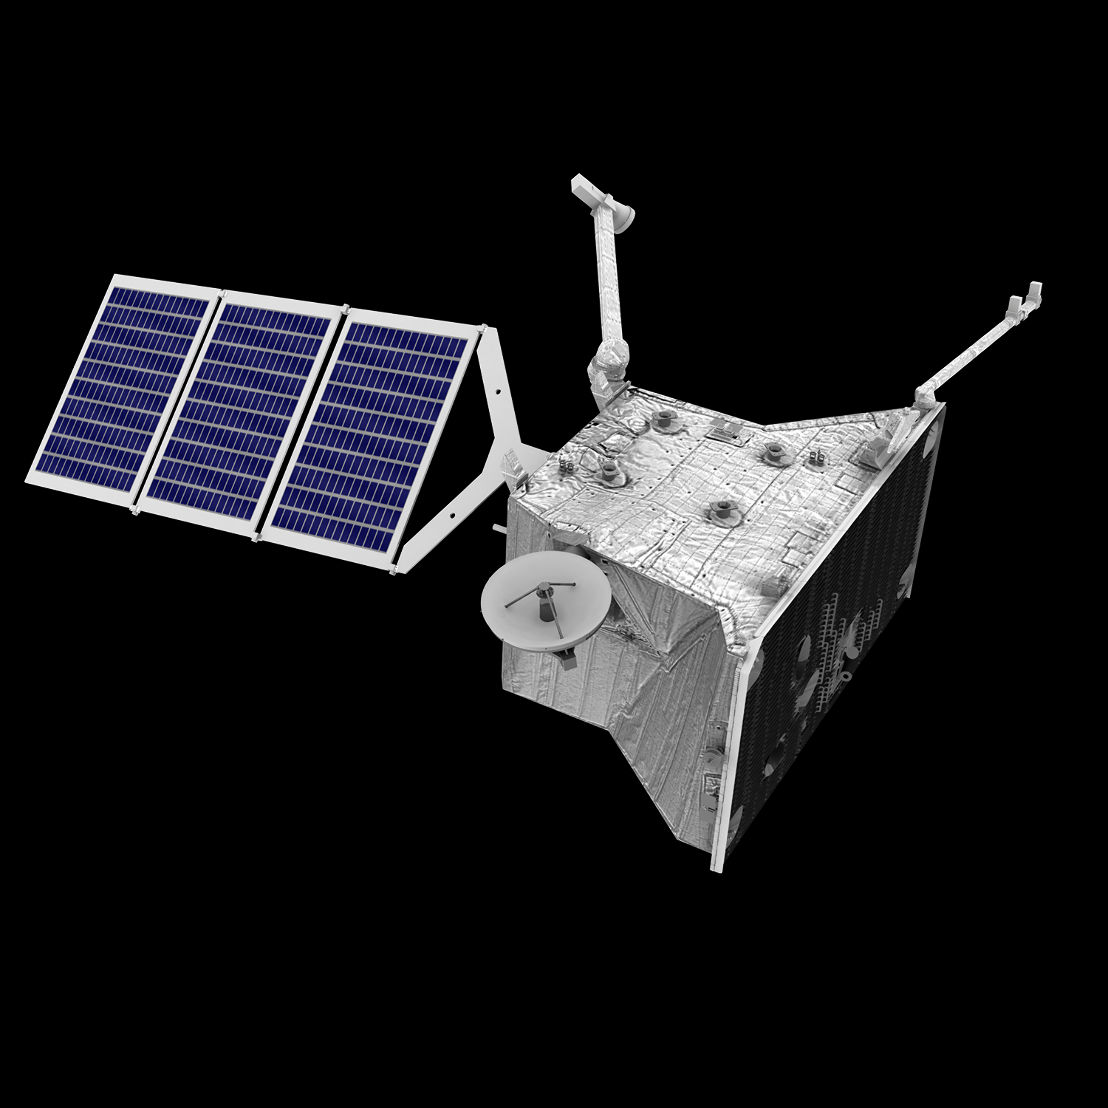 CNES, Roscosmos to cooperate on BepiColombo instrument